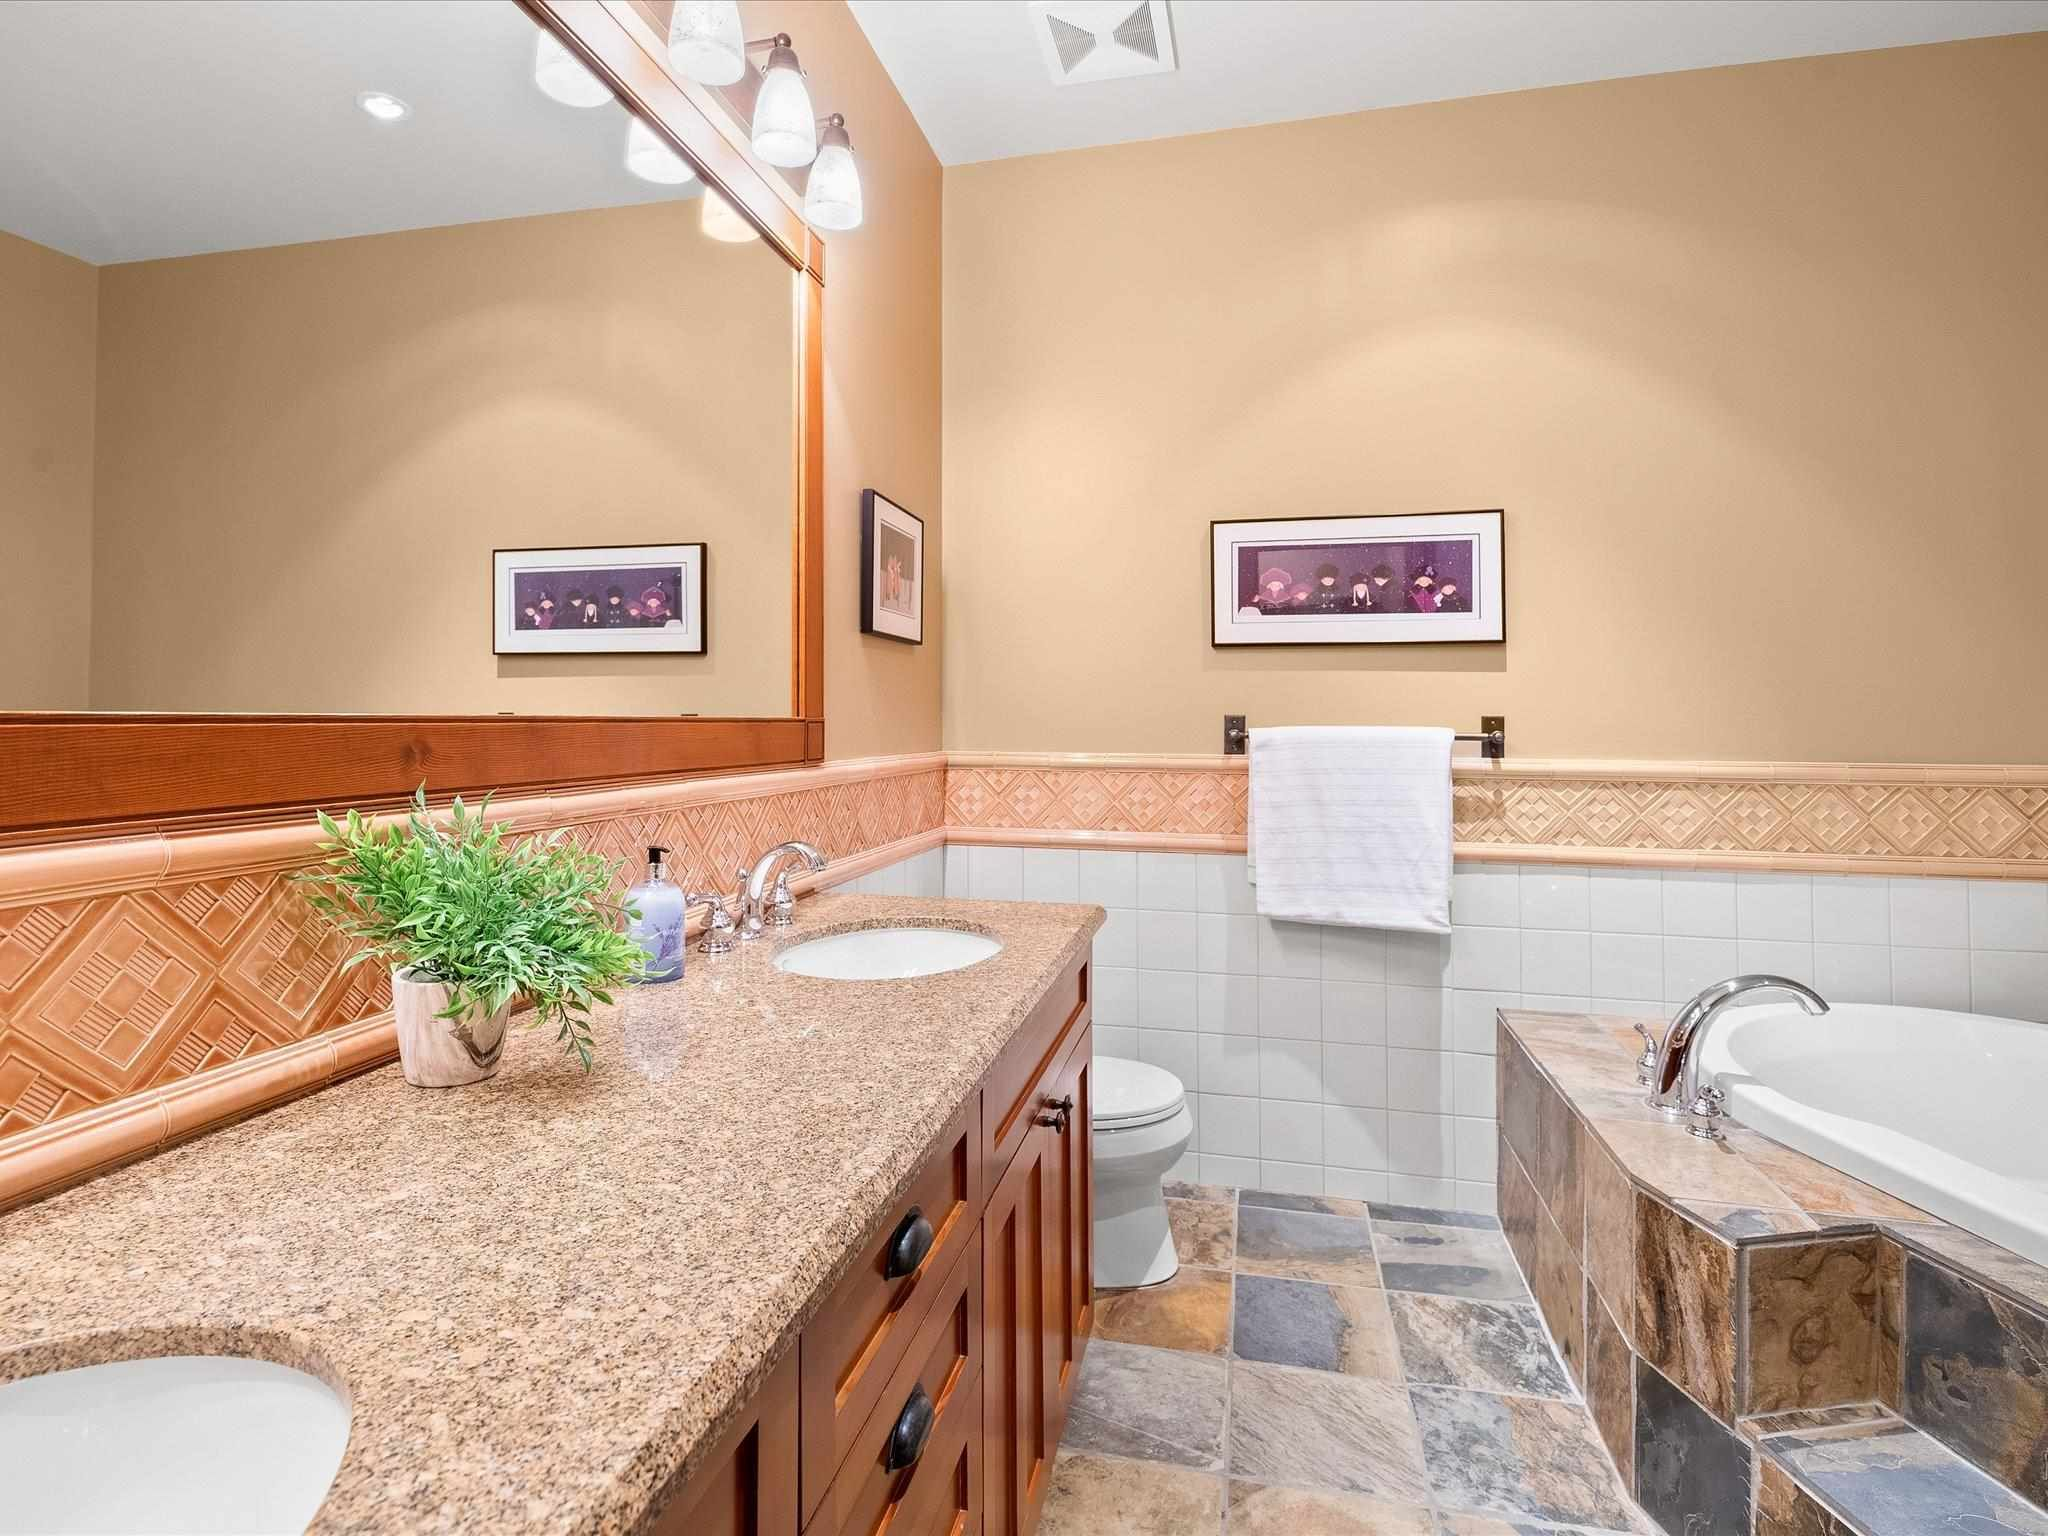 Photo 14: Photos: 4 2500 TALUSWOOD PLACE in Whistler: Nordic Townhouse for sale : MLS®# R2593995